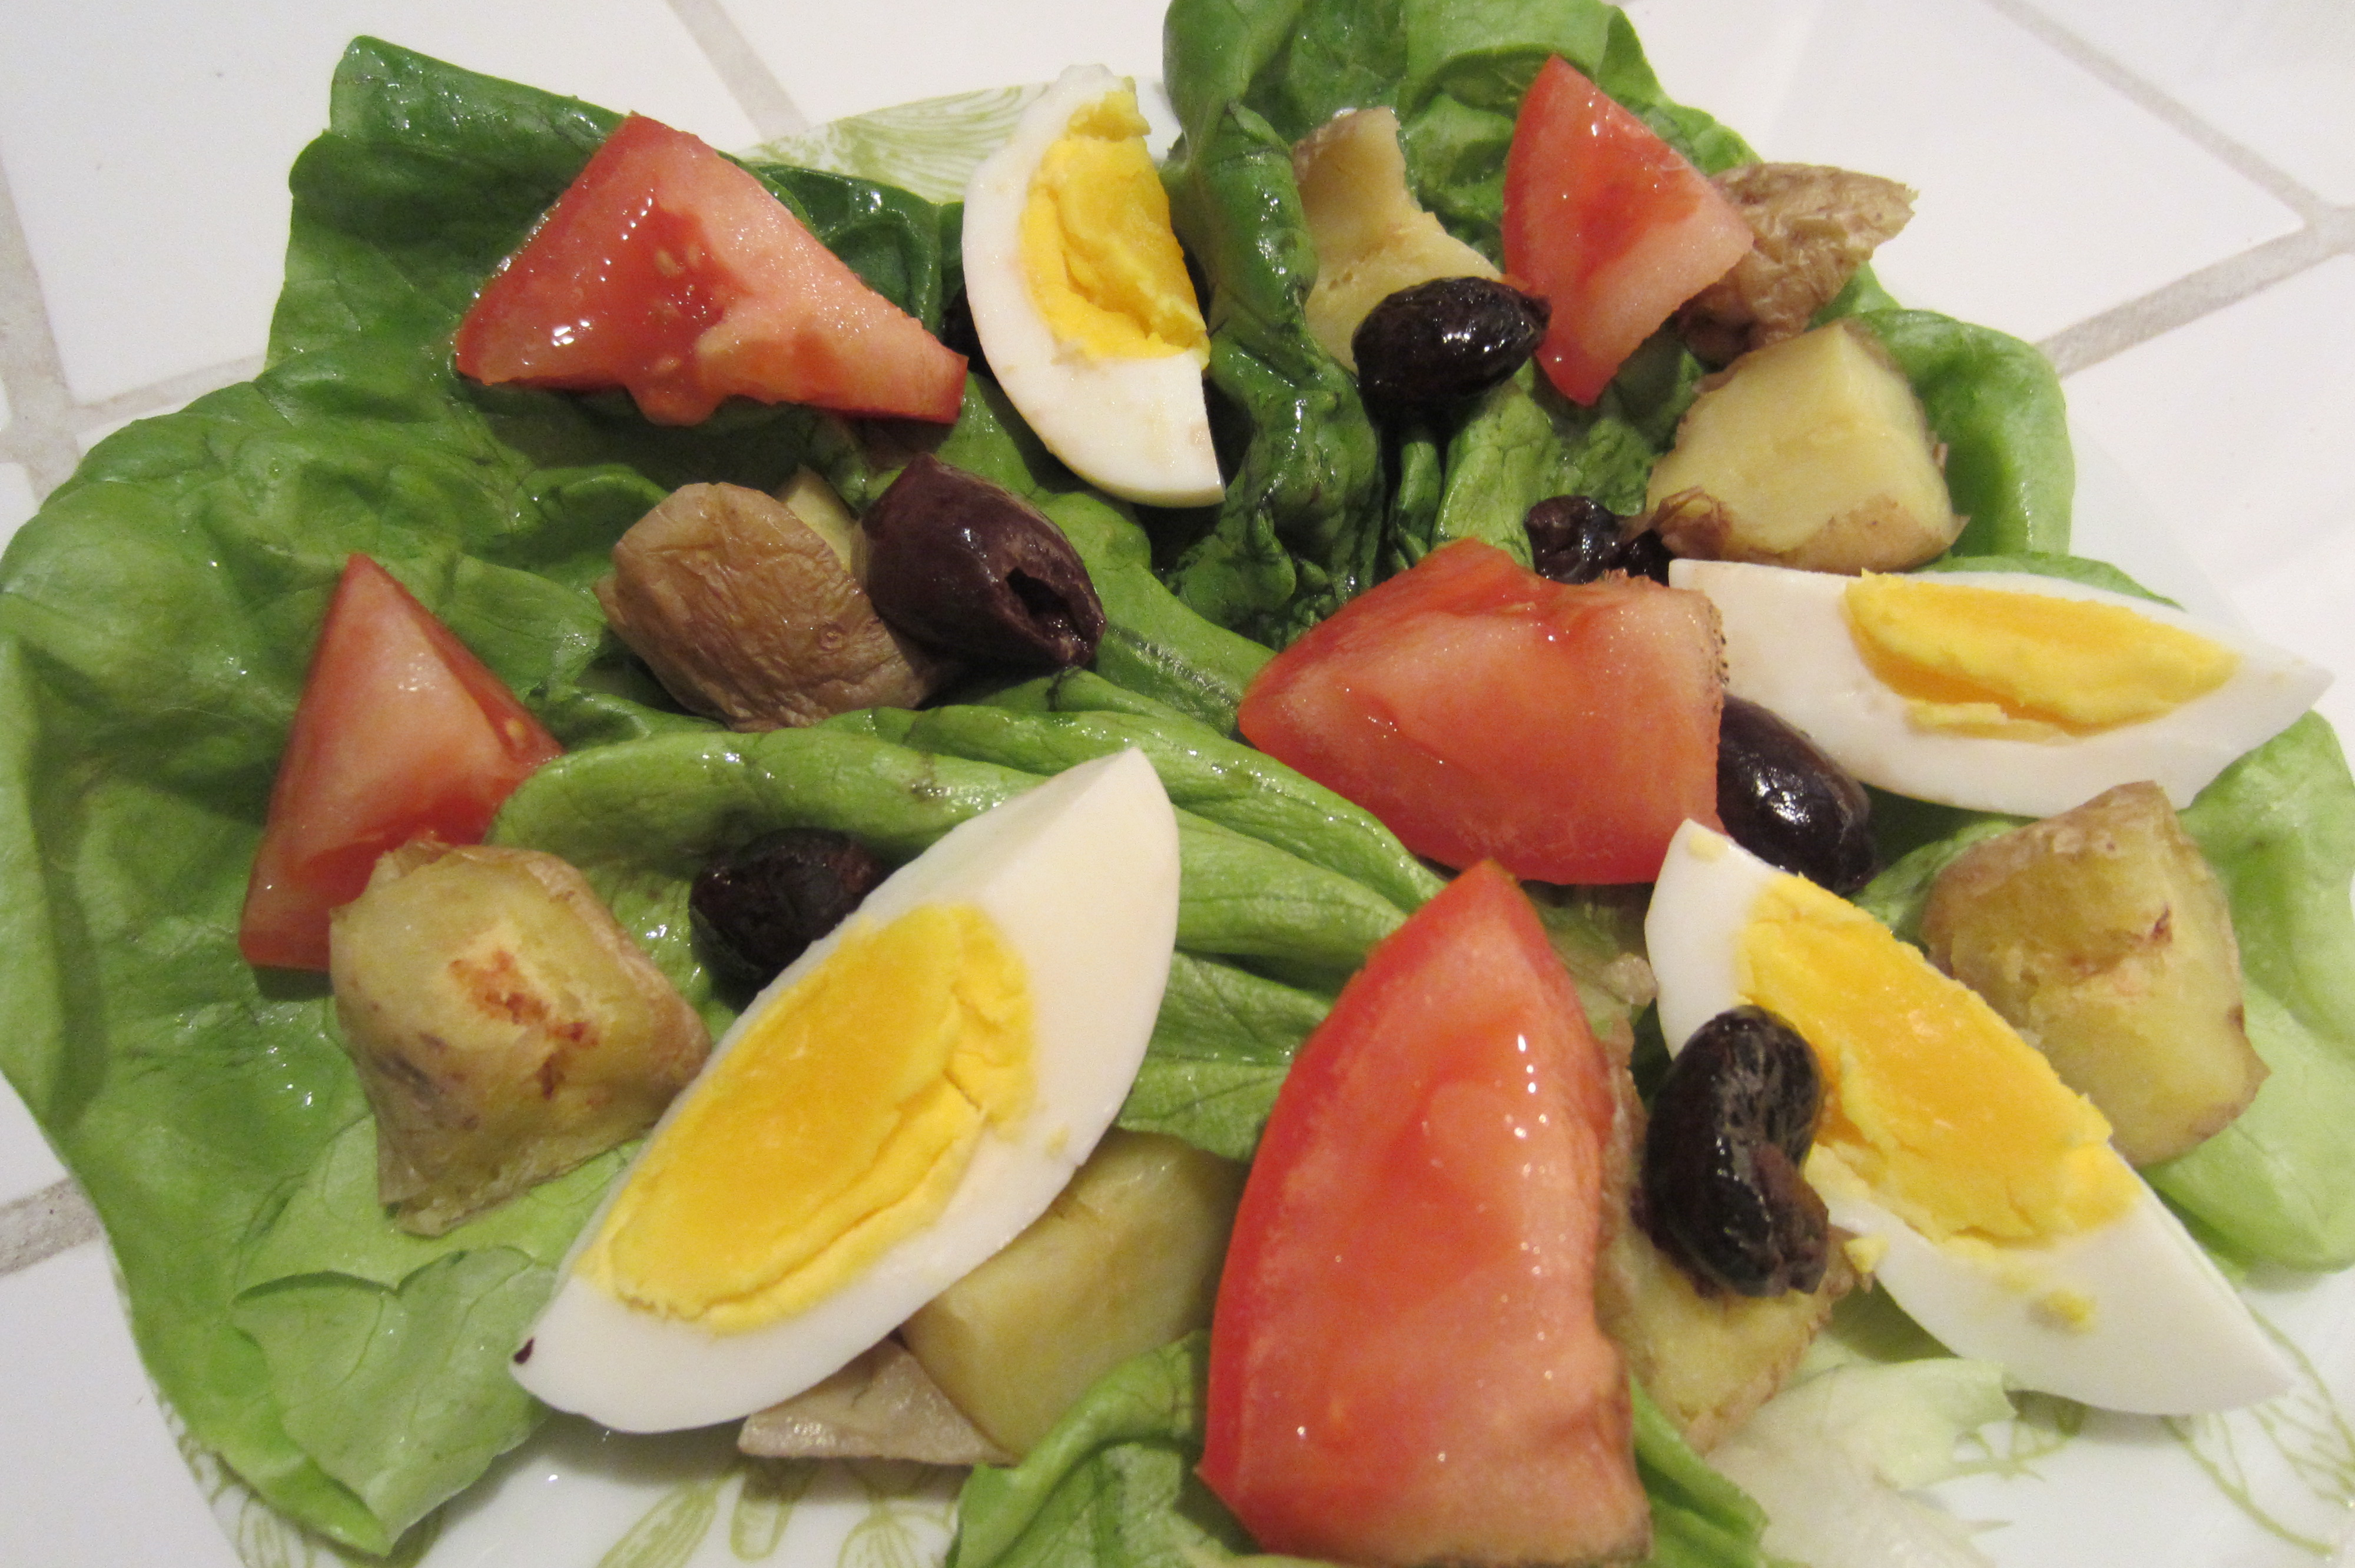 And enjoy a divine salad nicoise. Lucky me! (knock wood)